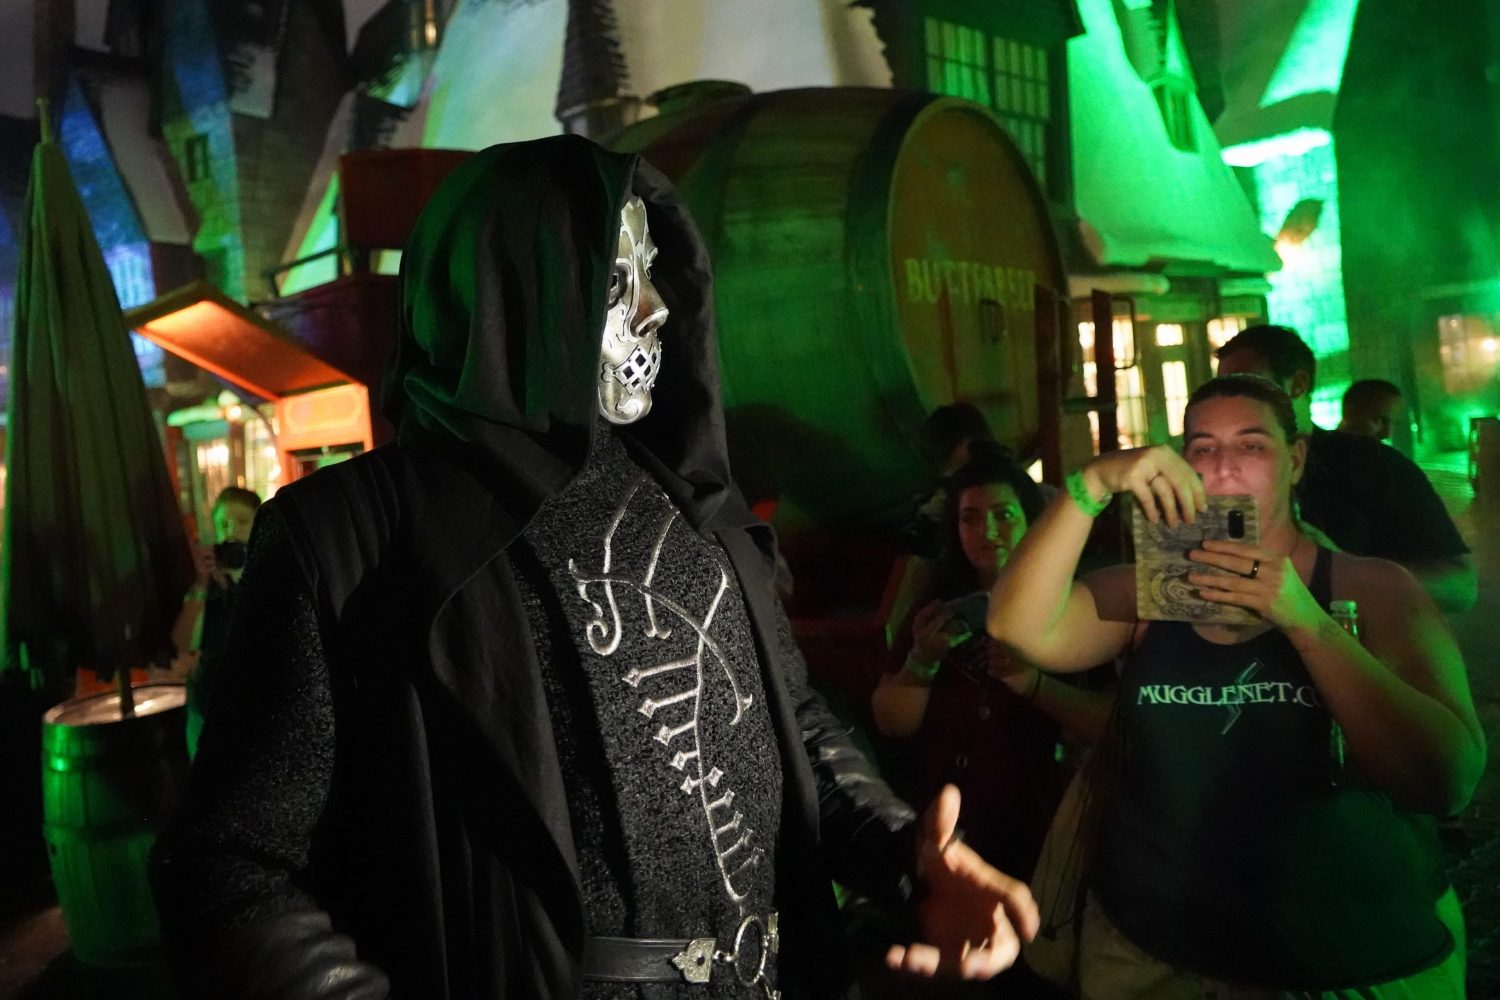 """The Death Eaters at """"Dark Arts at Hogwarts Castle"""" Roam the Streets of Hogsmeade Village."""